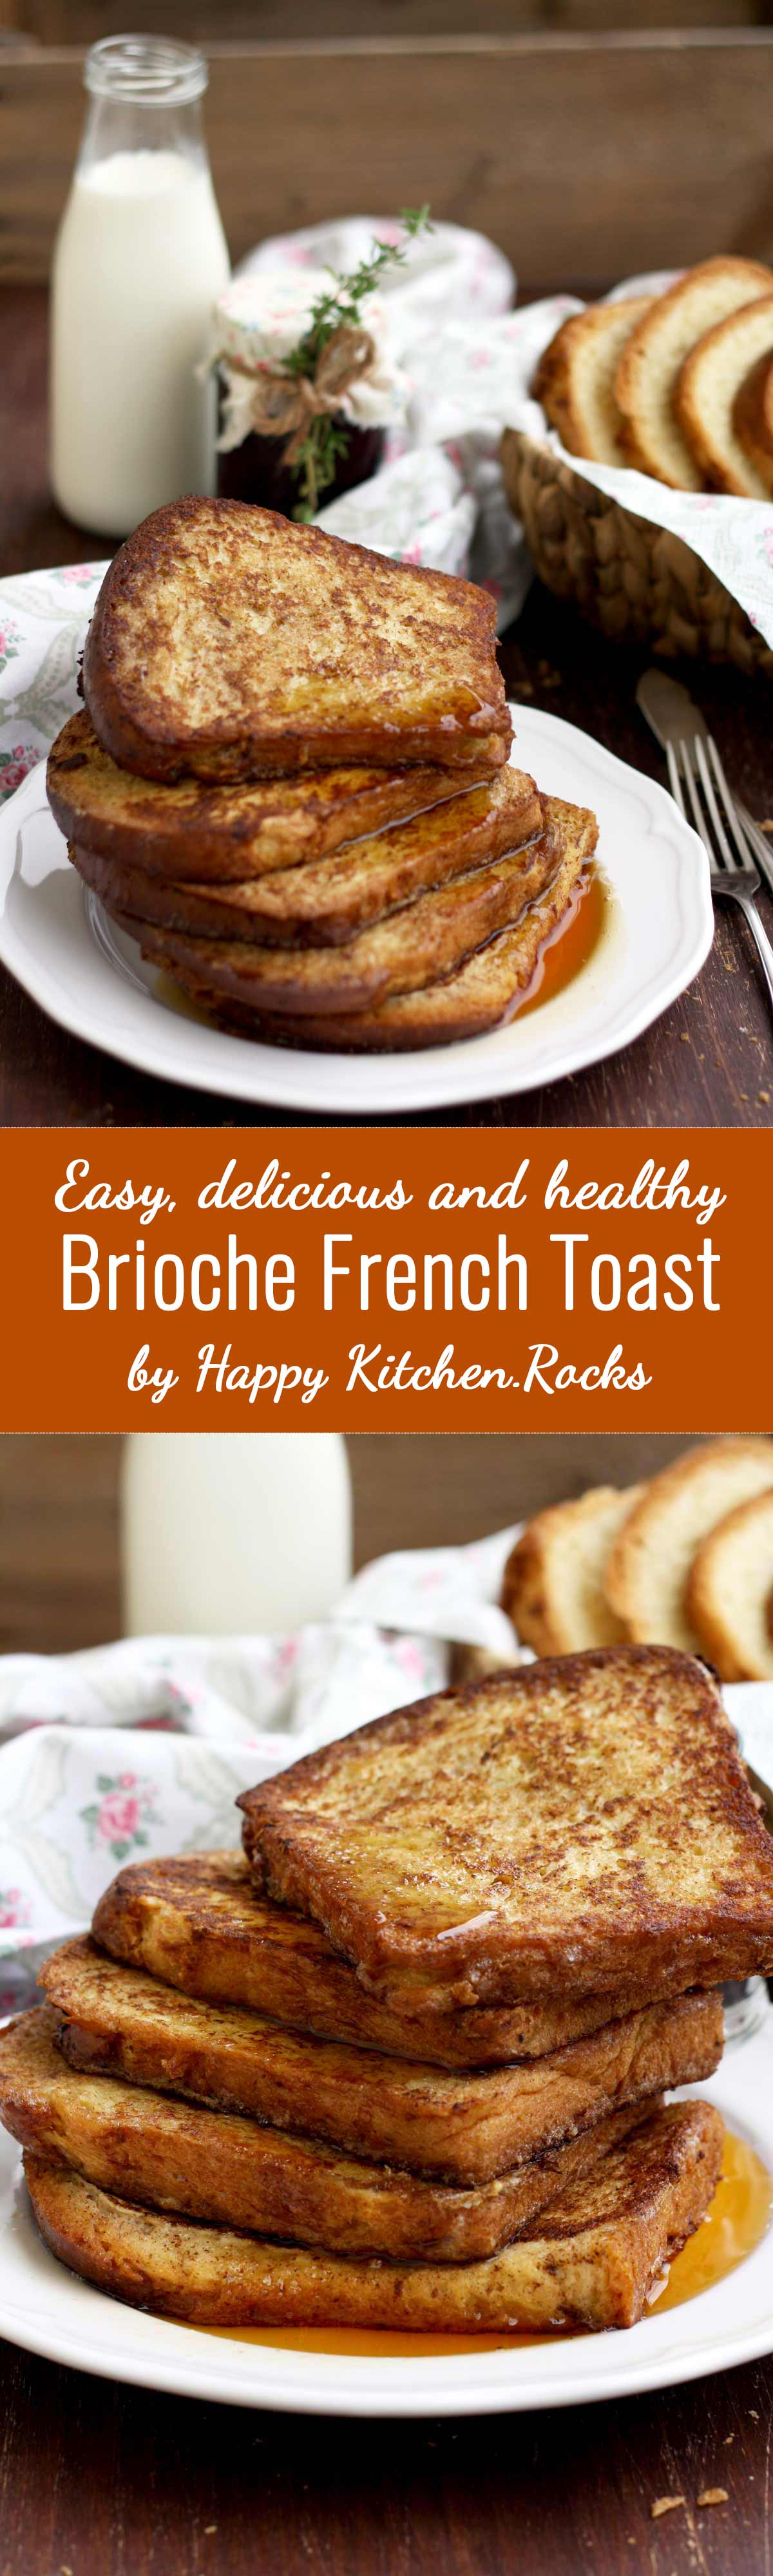 Healthier Brioche French Toast Super Long Collage with Text Overlay